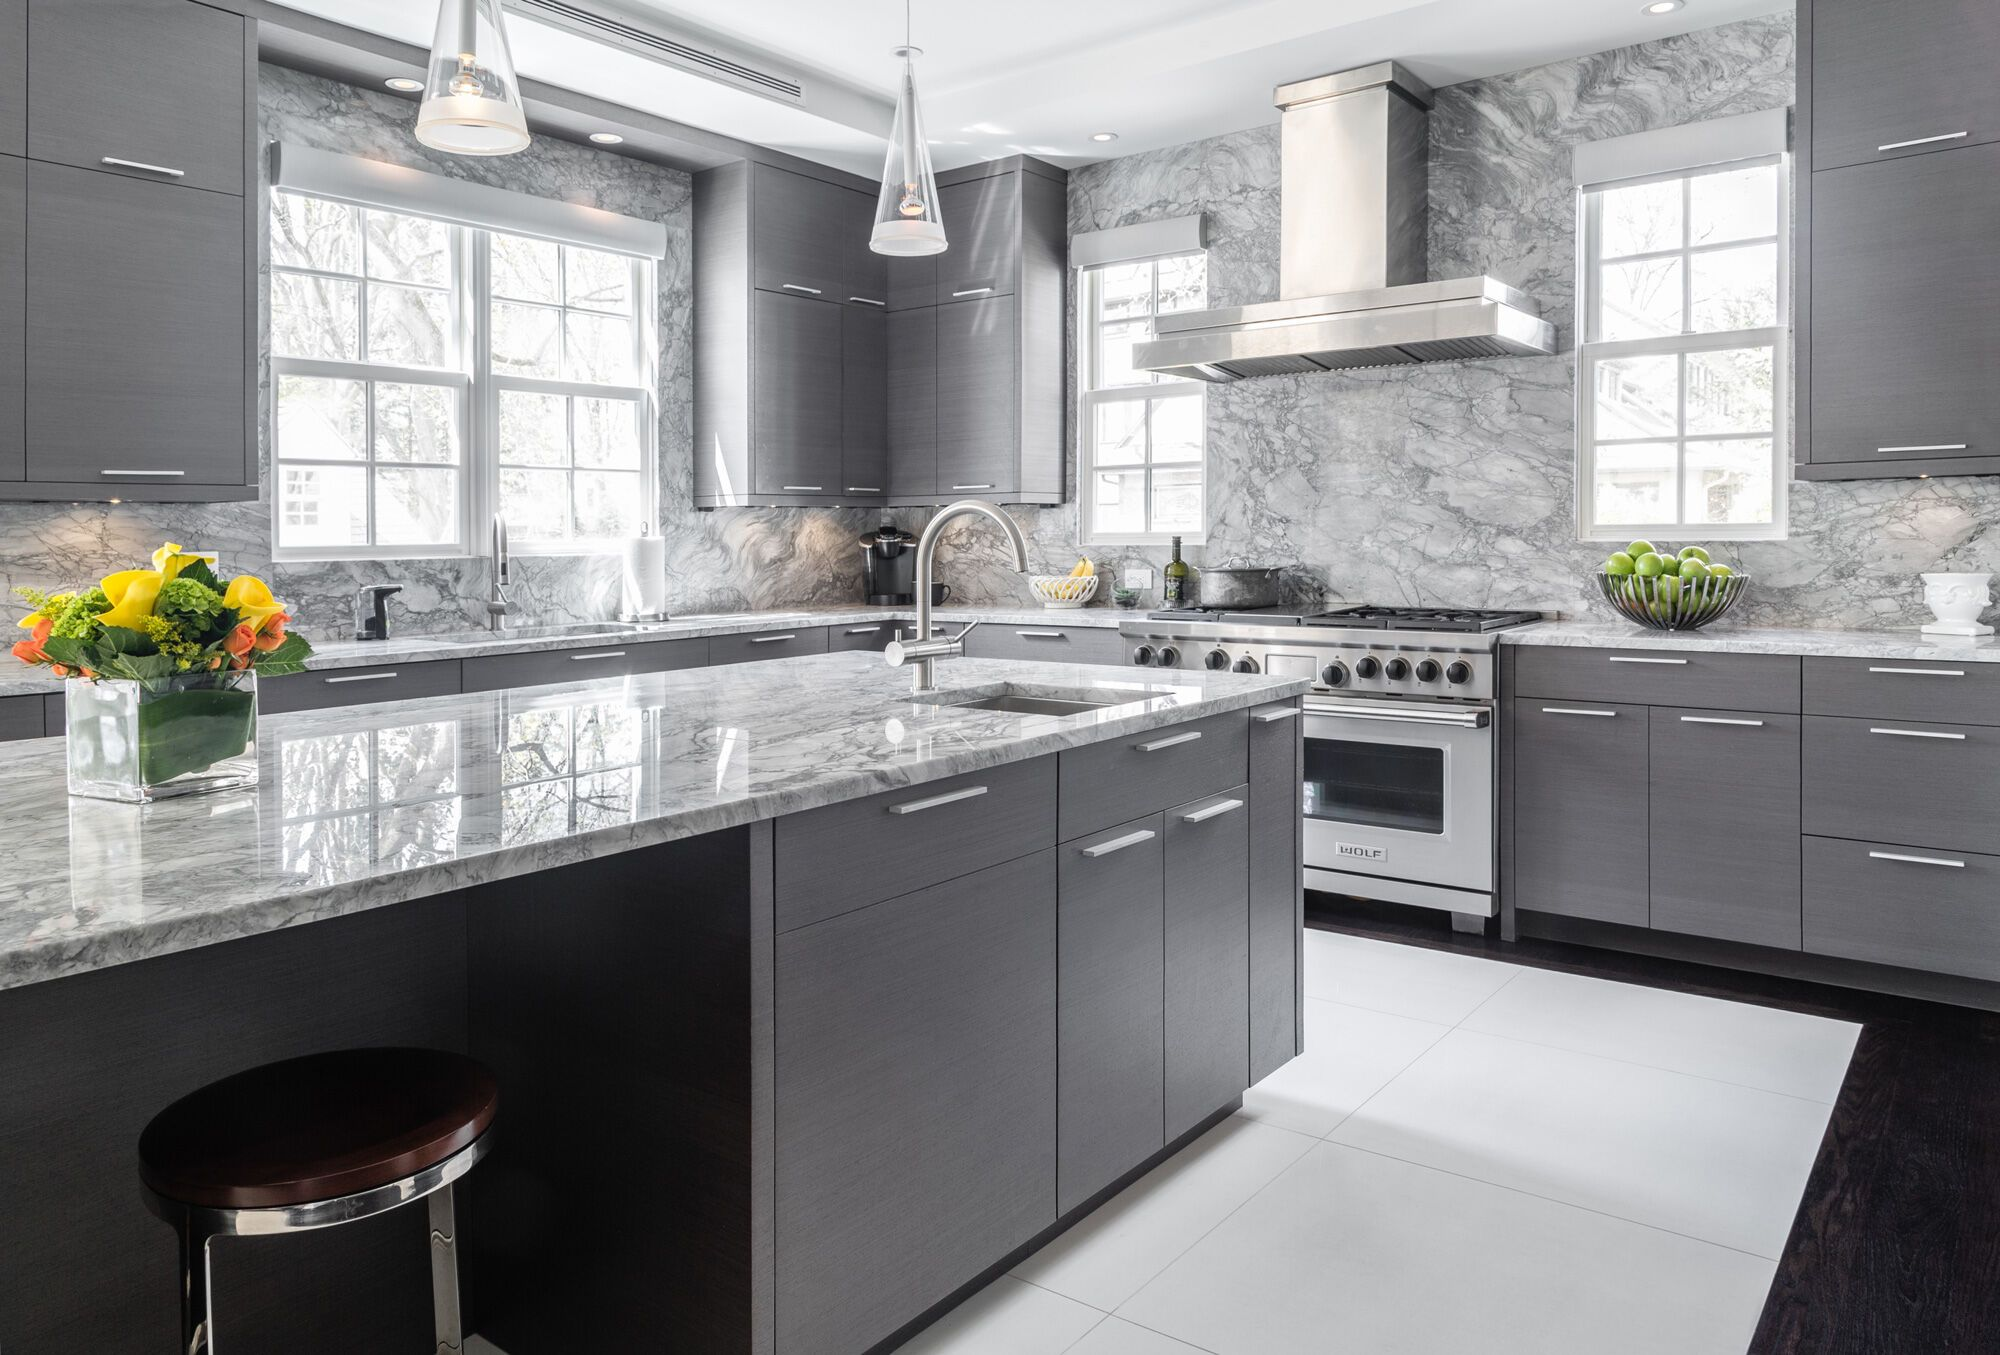 Pin By Rutt Handcrafted Cabinetry On Rutt Kitchens